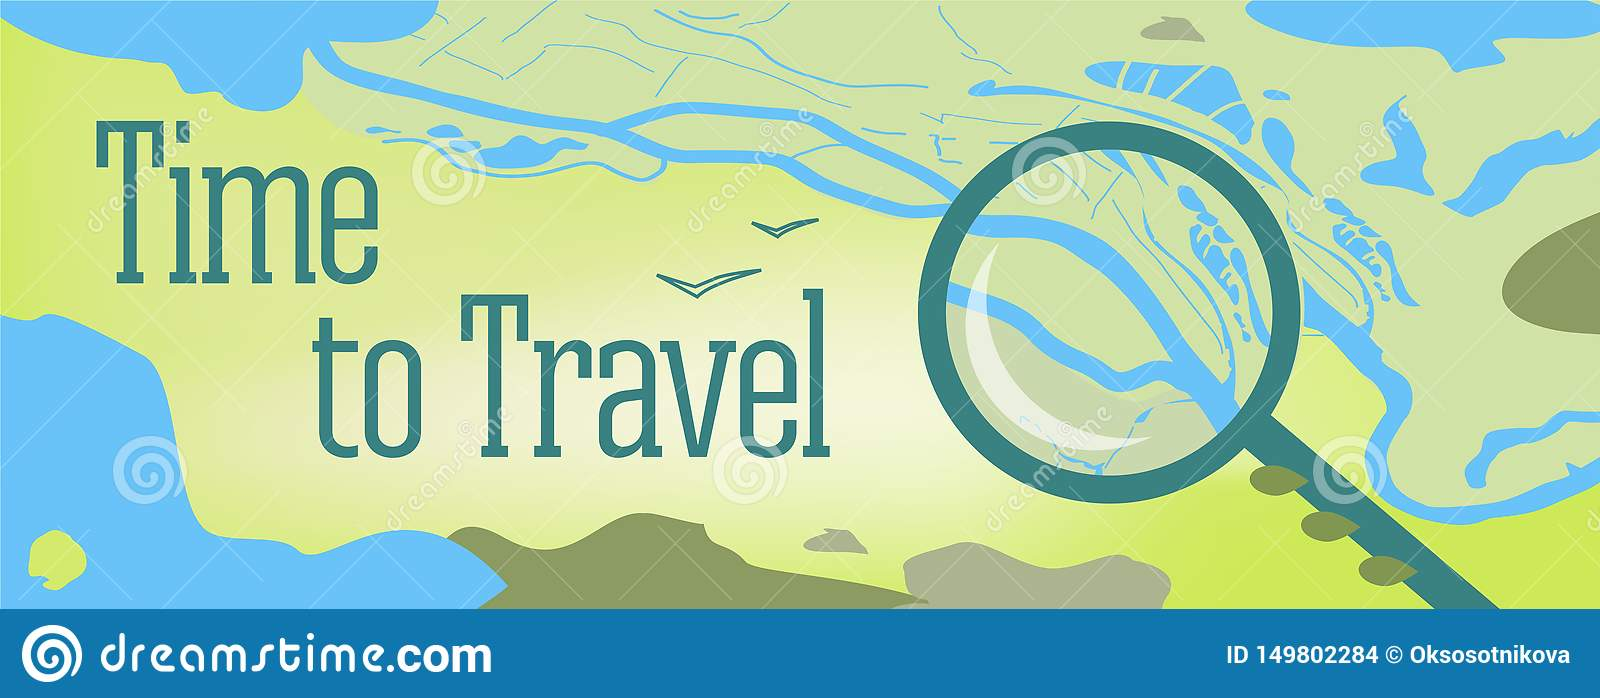 Vector banner design with text Time to Travel. Illustration of a map of the world, with the sea, lakes, mountains